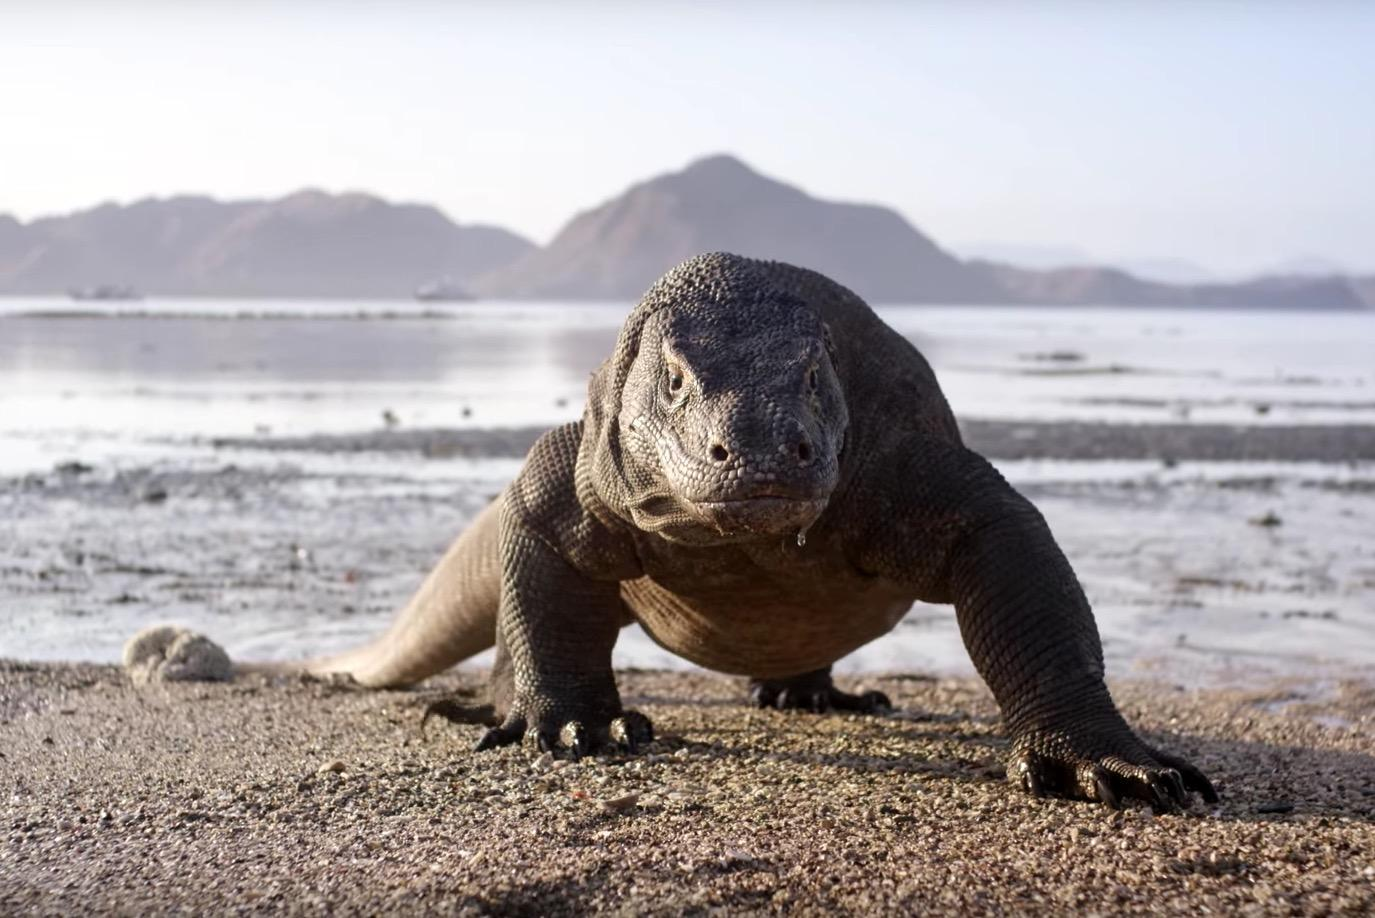 Planet Earth 2: Viewers complain about 'fake' sound effects despite